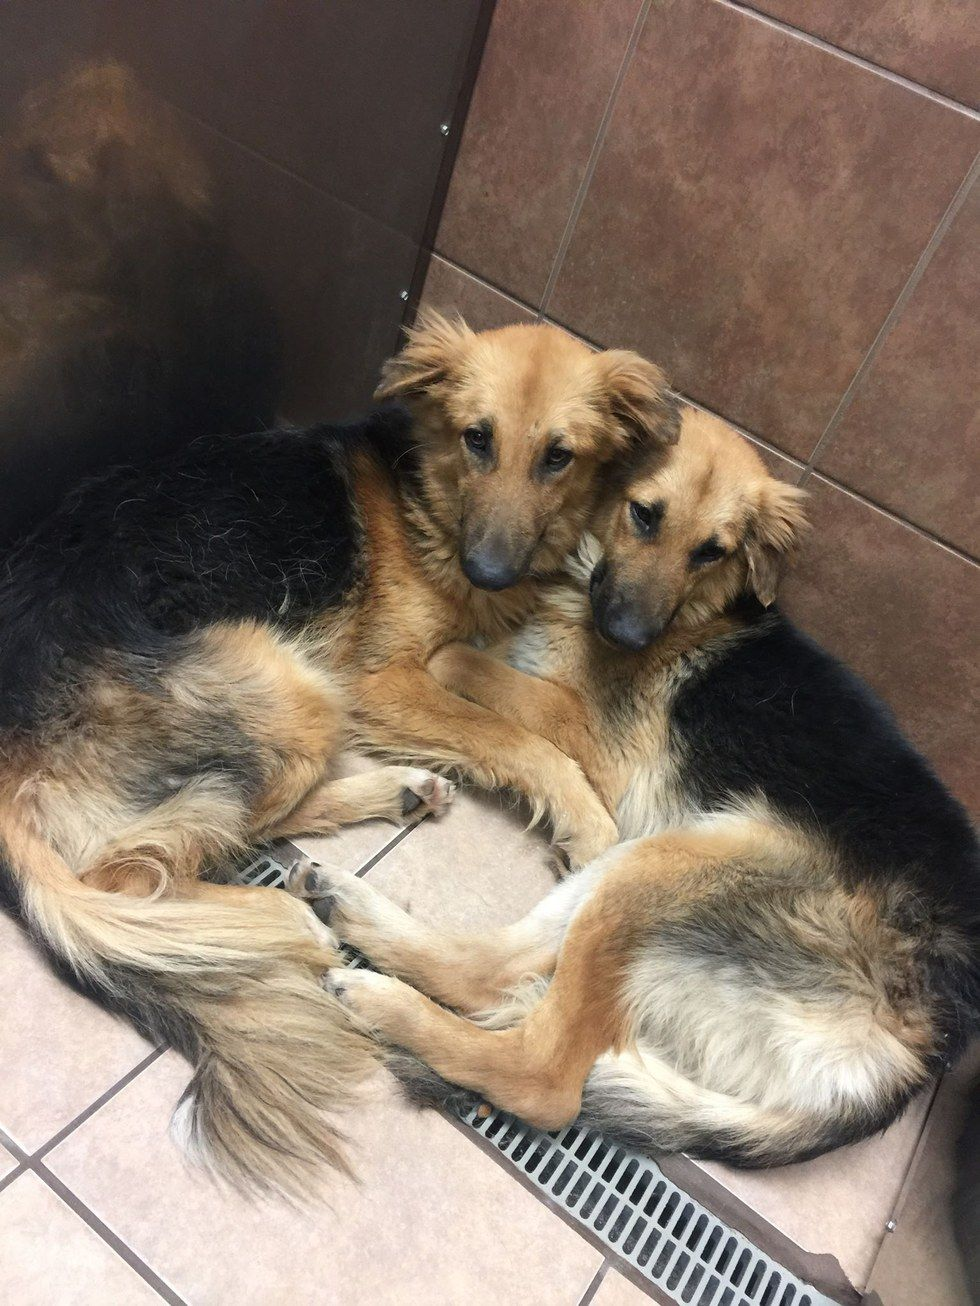 Dog Best Friends Hug Each Other After Being Dumped At Shelter Shelter Dogs Dog Best Friend Dogs